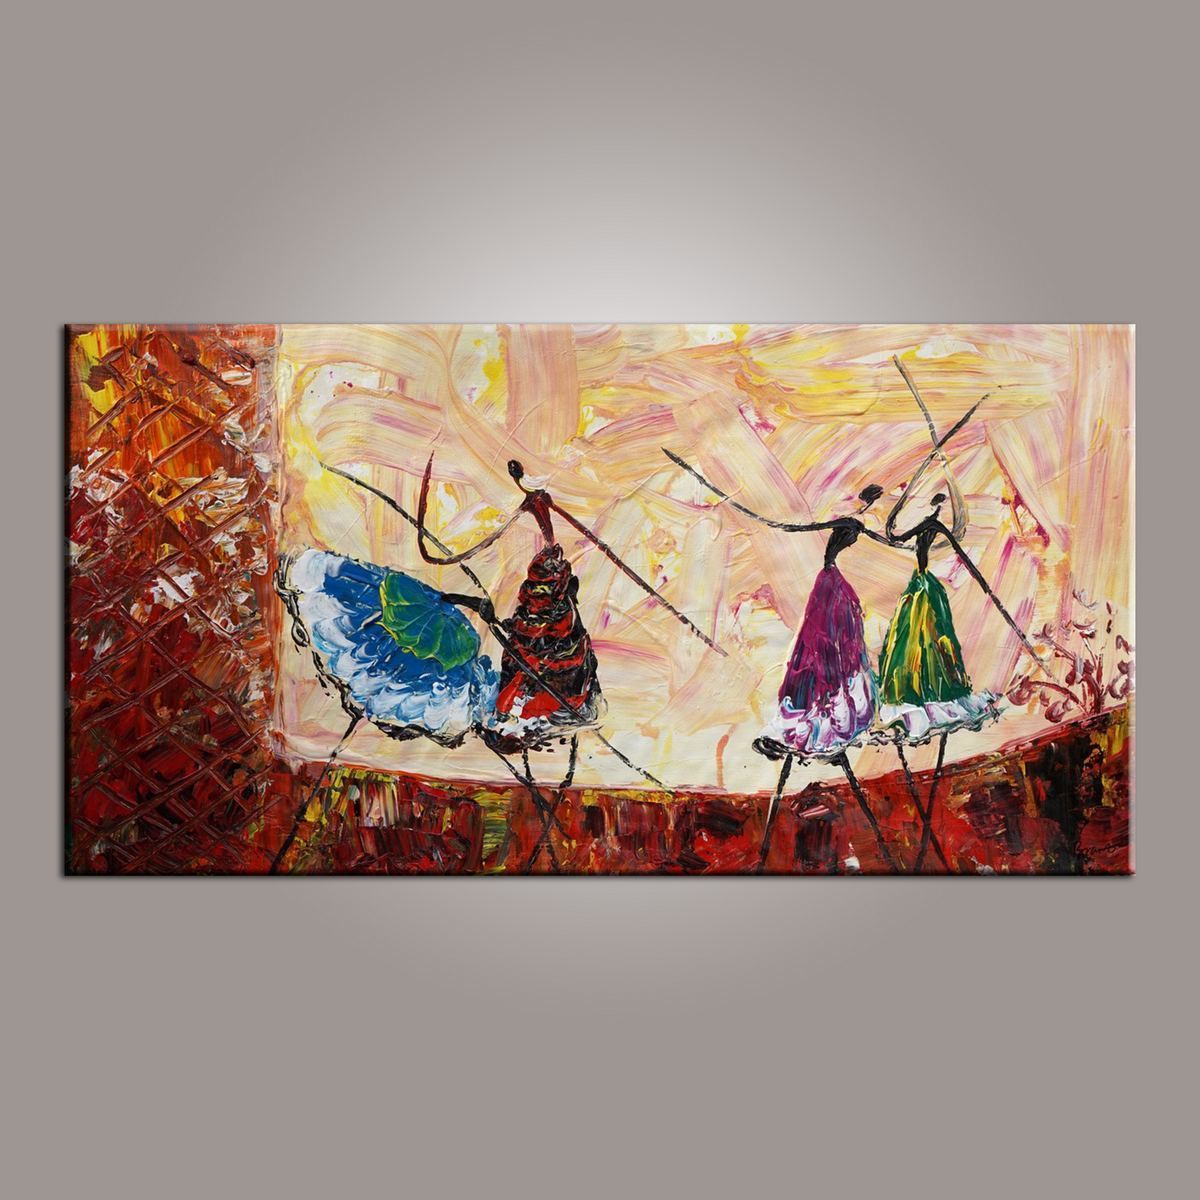 Abstract Painting, Ballet Dancer Art, Canvas Painting, Abstract Art, Hand Painted Art, Bedroom Wall Art - Art Painting Canvas